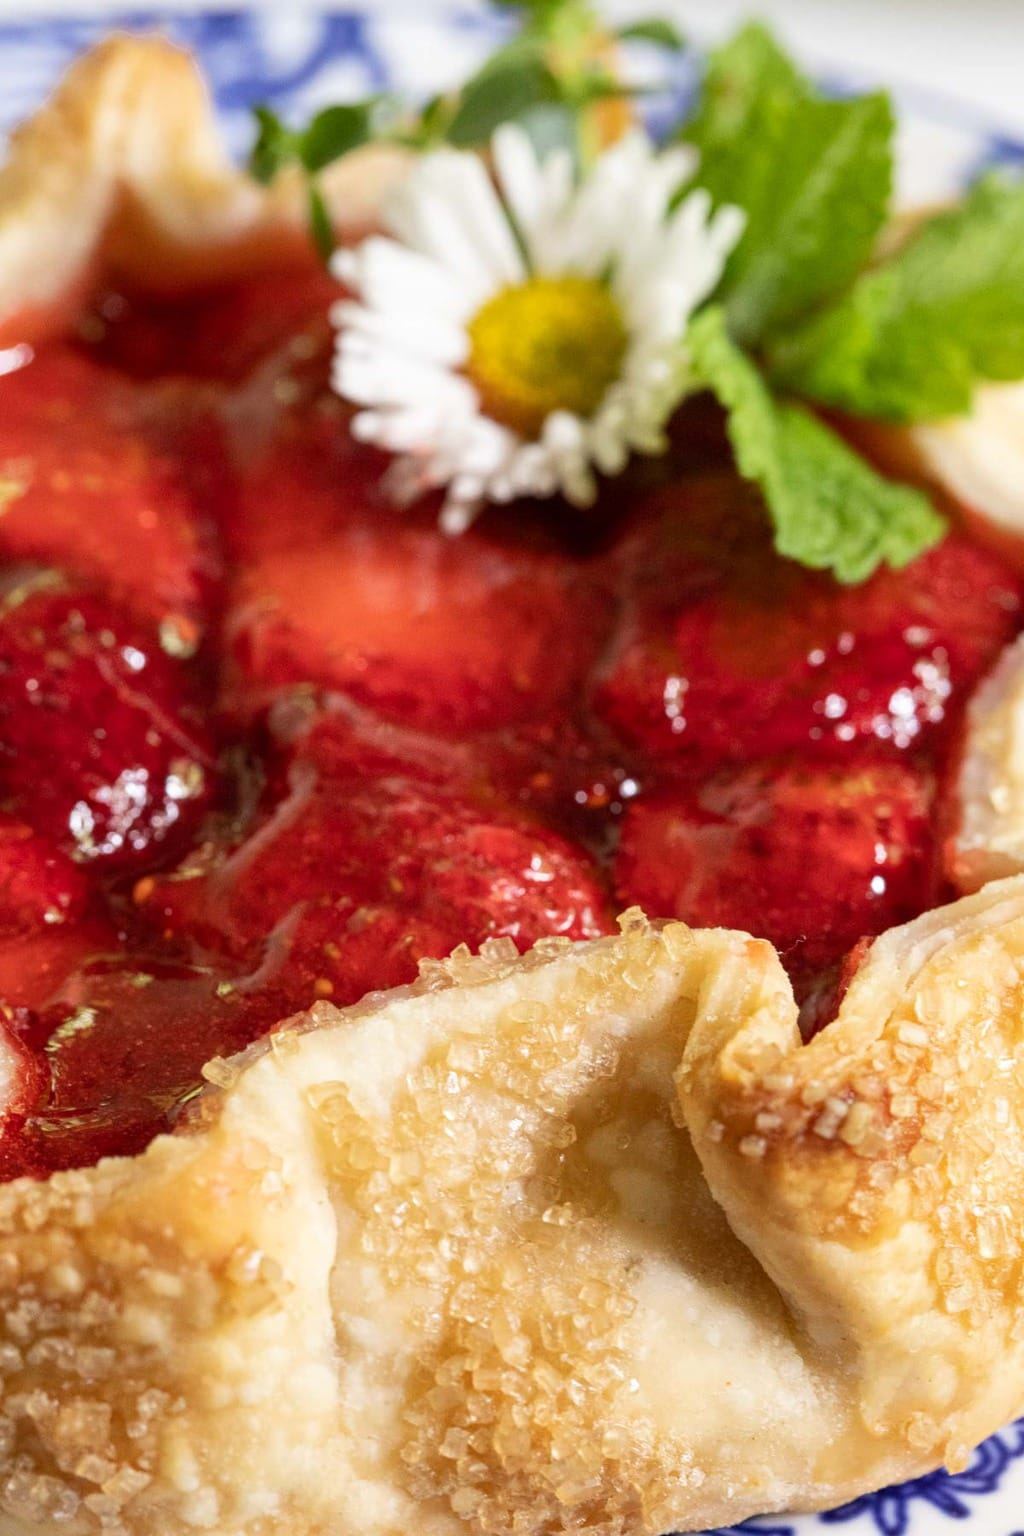 Ultra closeup vertical side photo of a Fresh Strawberry Galette garnished with a wild daisy and fresh mint leaves.